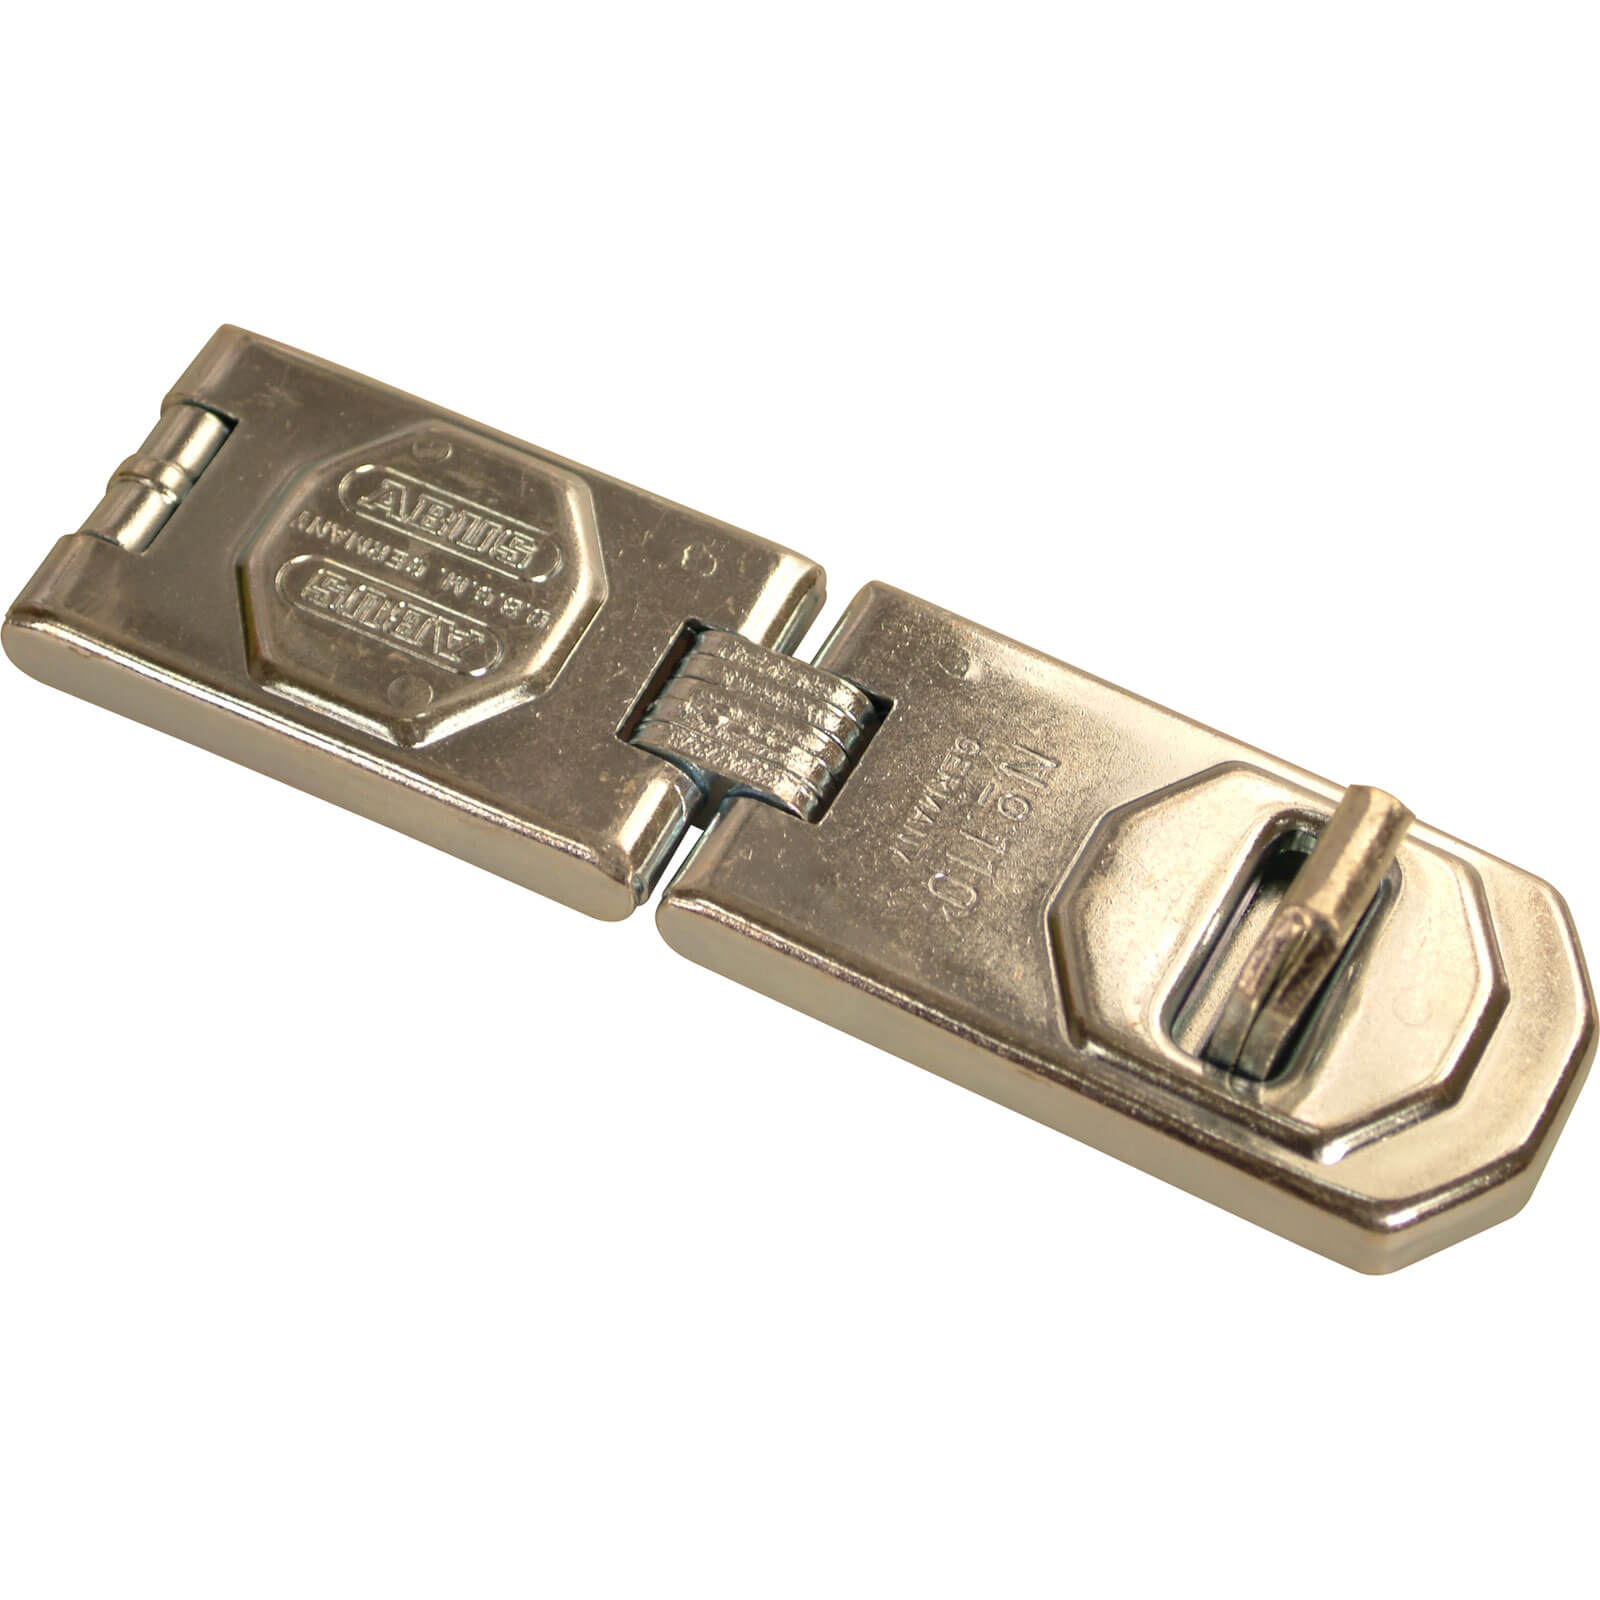 Abus 110 Series Universal Hasp & Staple 115mm Single Jointed